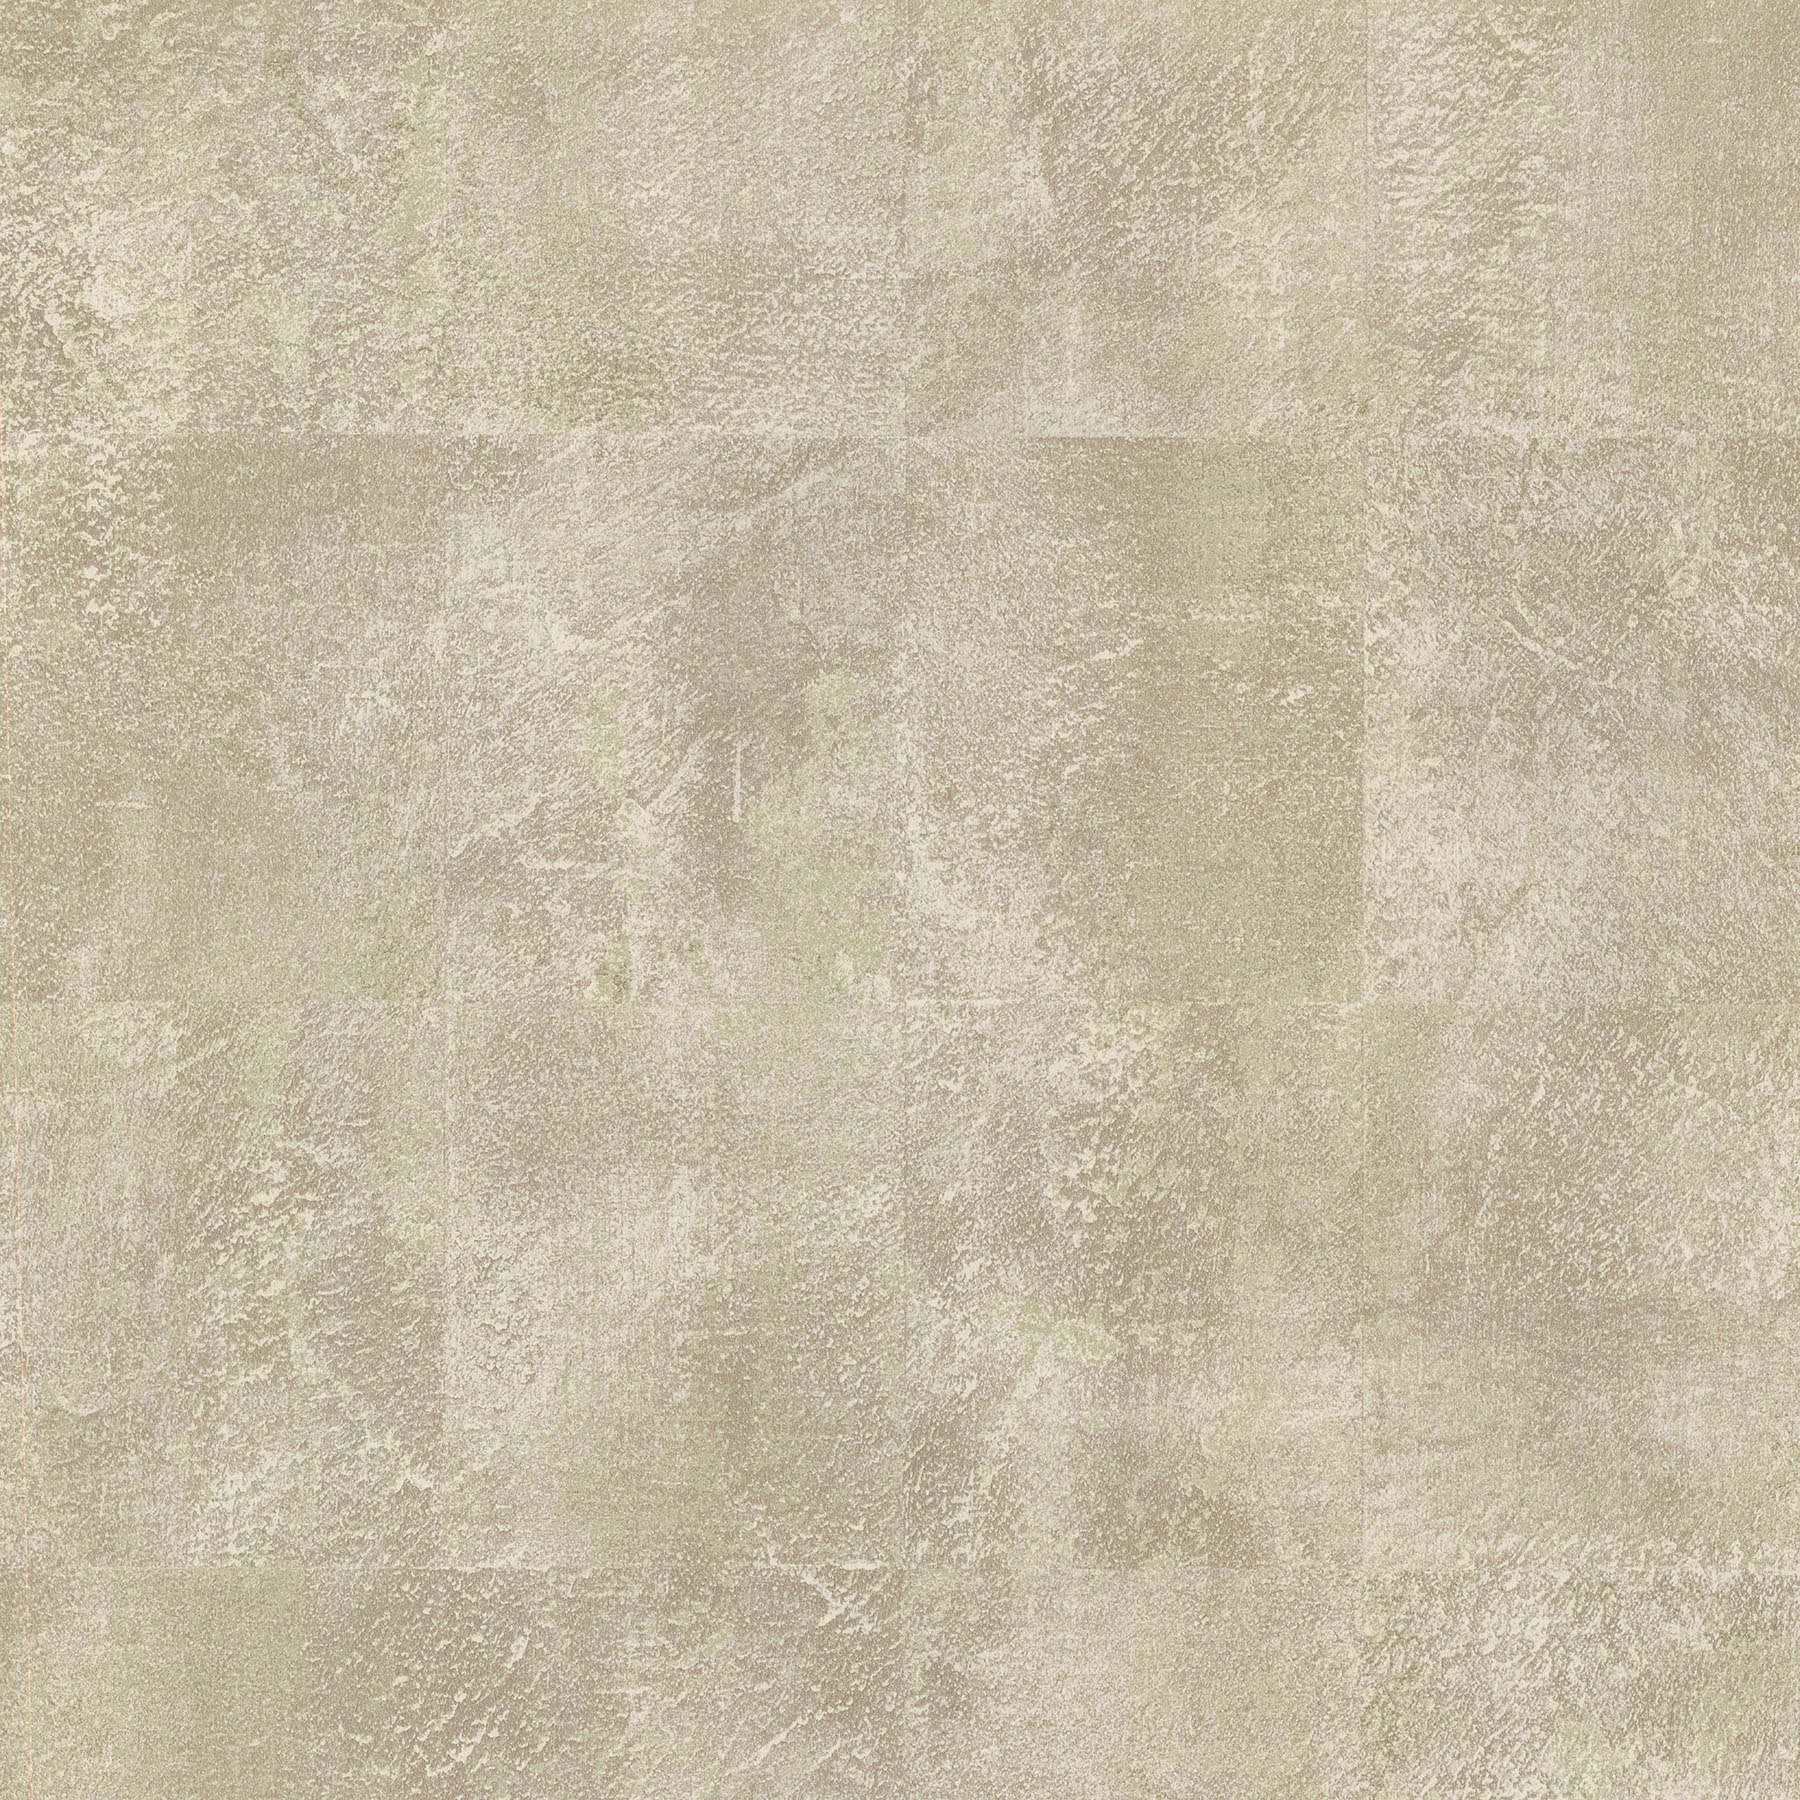 Picture of Azoic Gold Brushstroke Squares Wallpaper